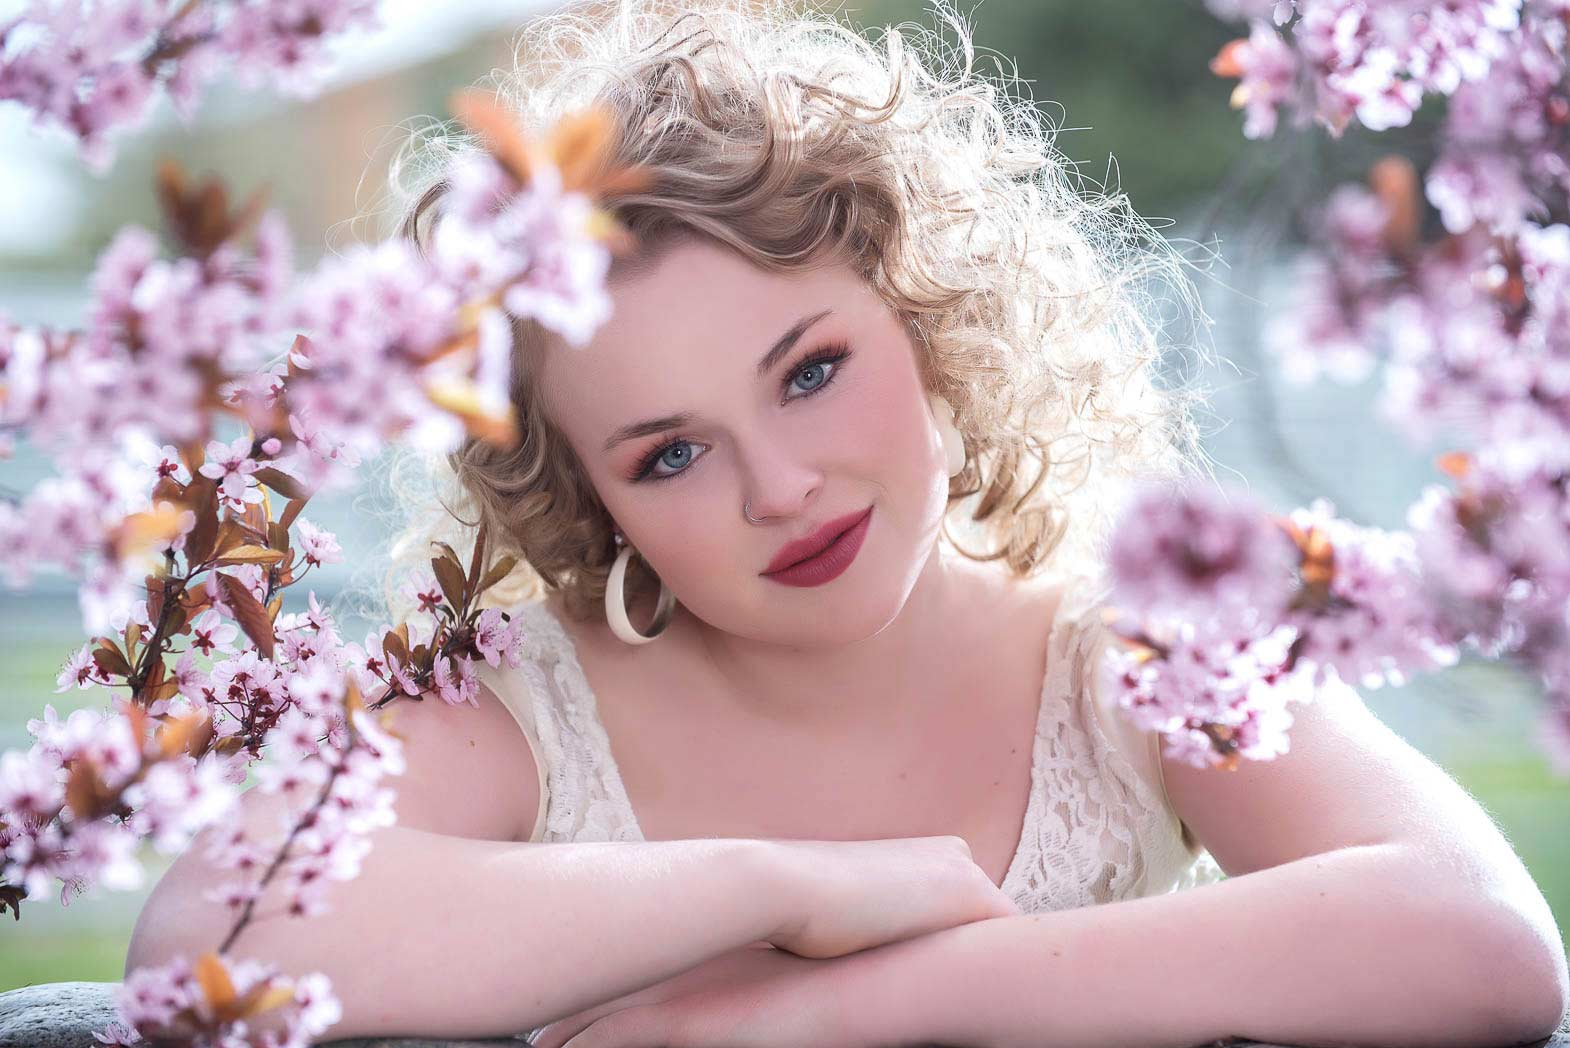 Senior girl model surrounded by pink flowers smiling